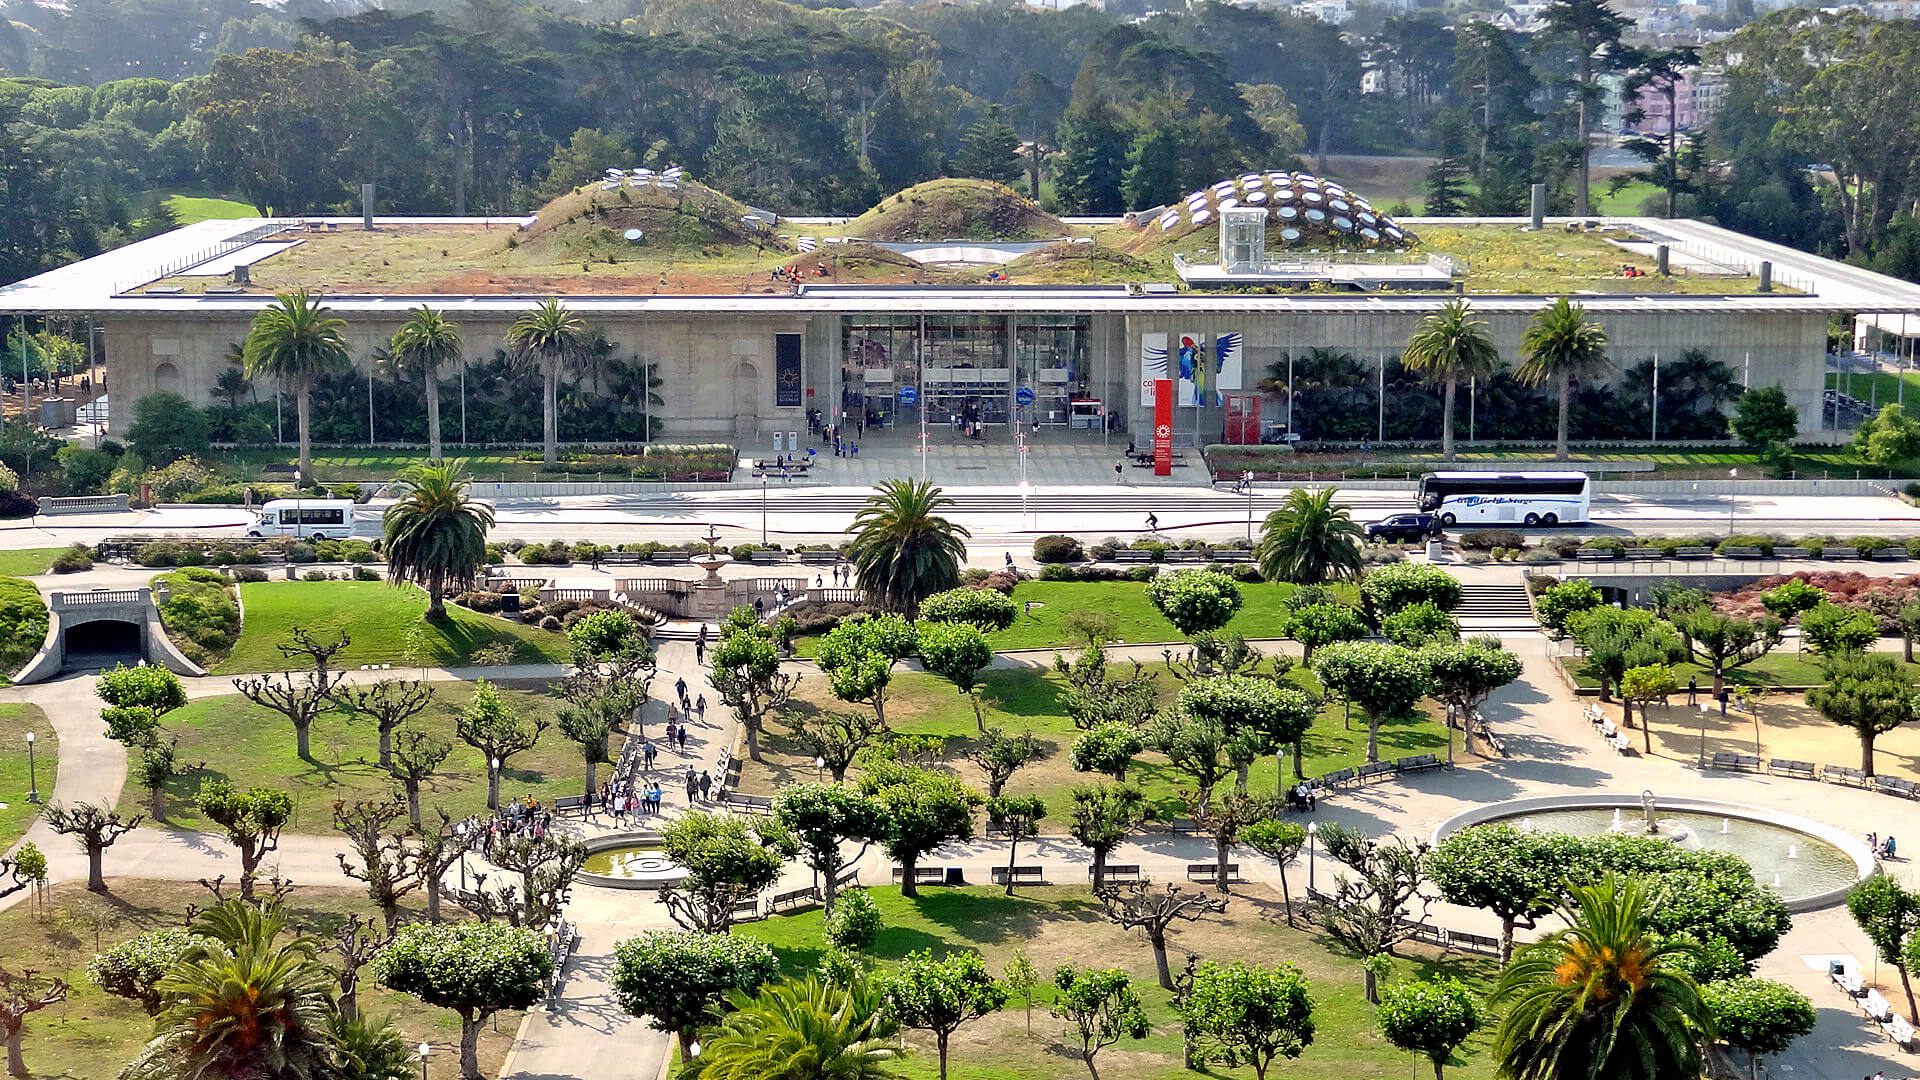 California Academy of Sciences © Dennis Jarvis/Flickr